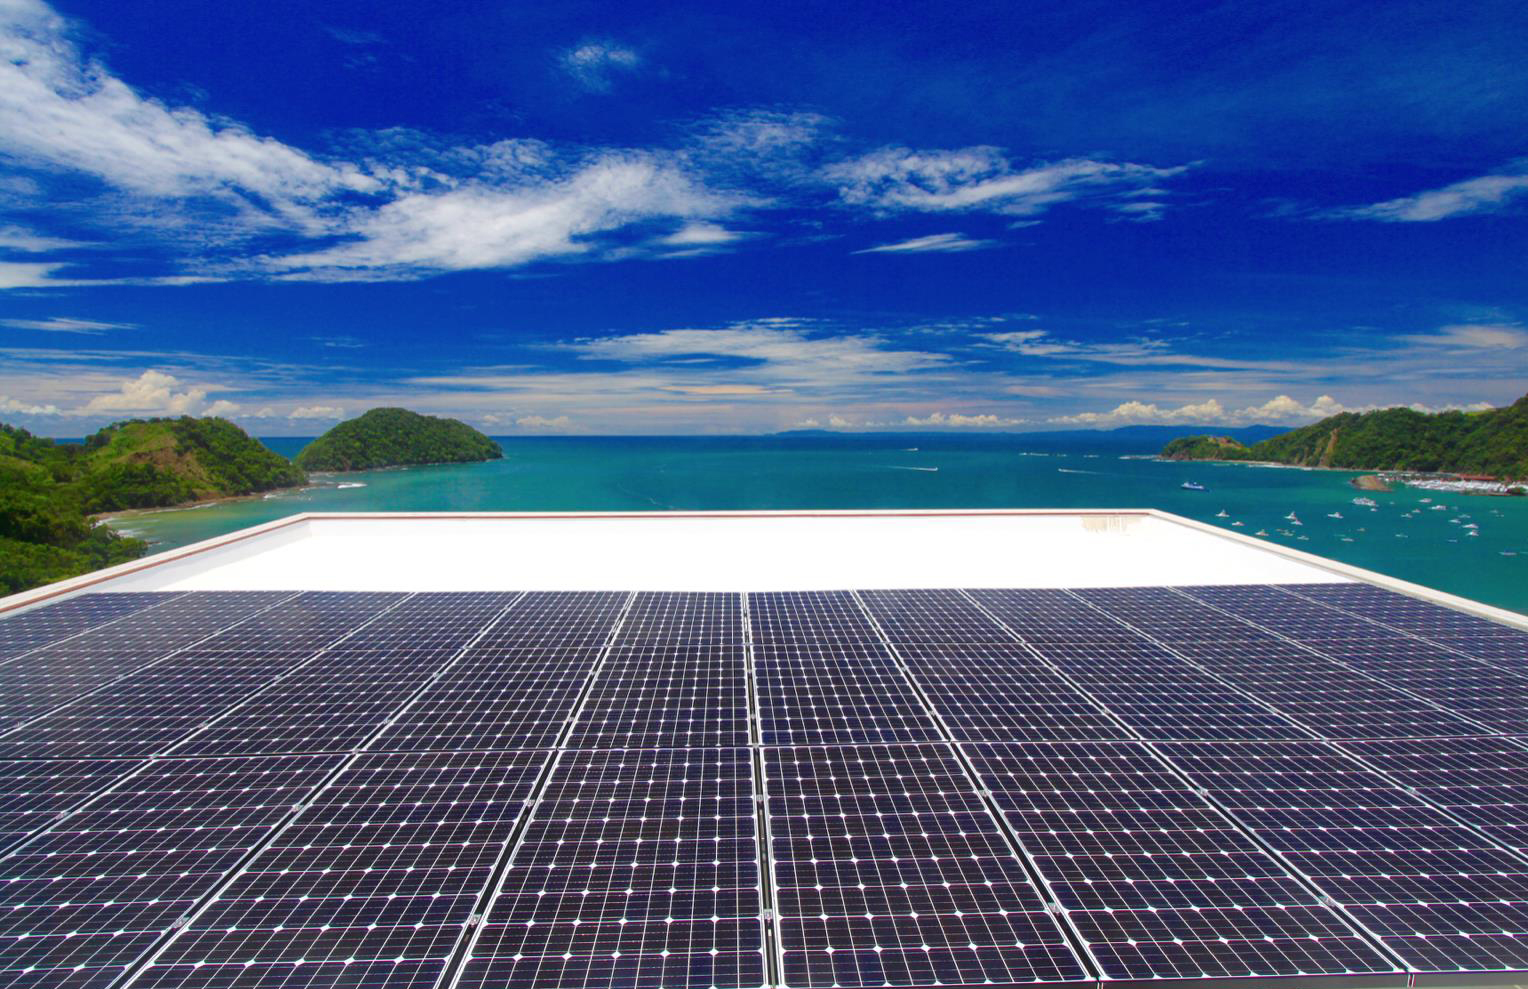 Costa Rican Luxury Residential Project Selects Mitsubishi Electric on mitsubishi electric heaters, mitsubishi electric inverter, mitsubishi electric transformers, mitsubishi electric air conditioners, mitsubishi electric hvac, mitsubishi electric electronics, mitsubishi electric power, mitsubishi electric heating,